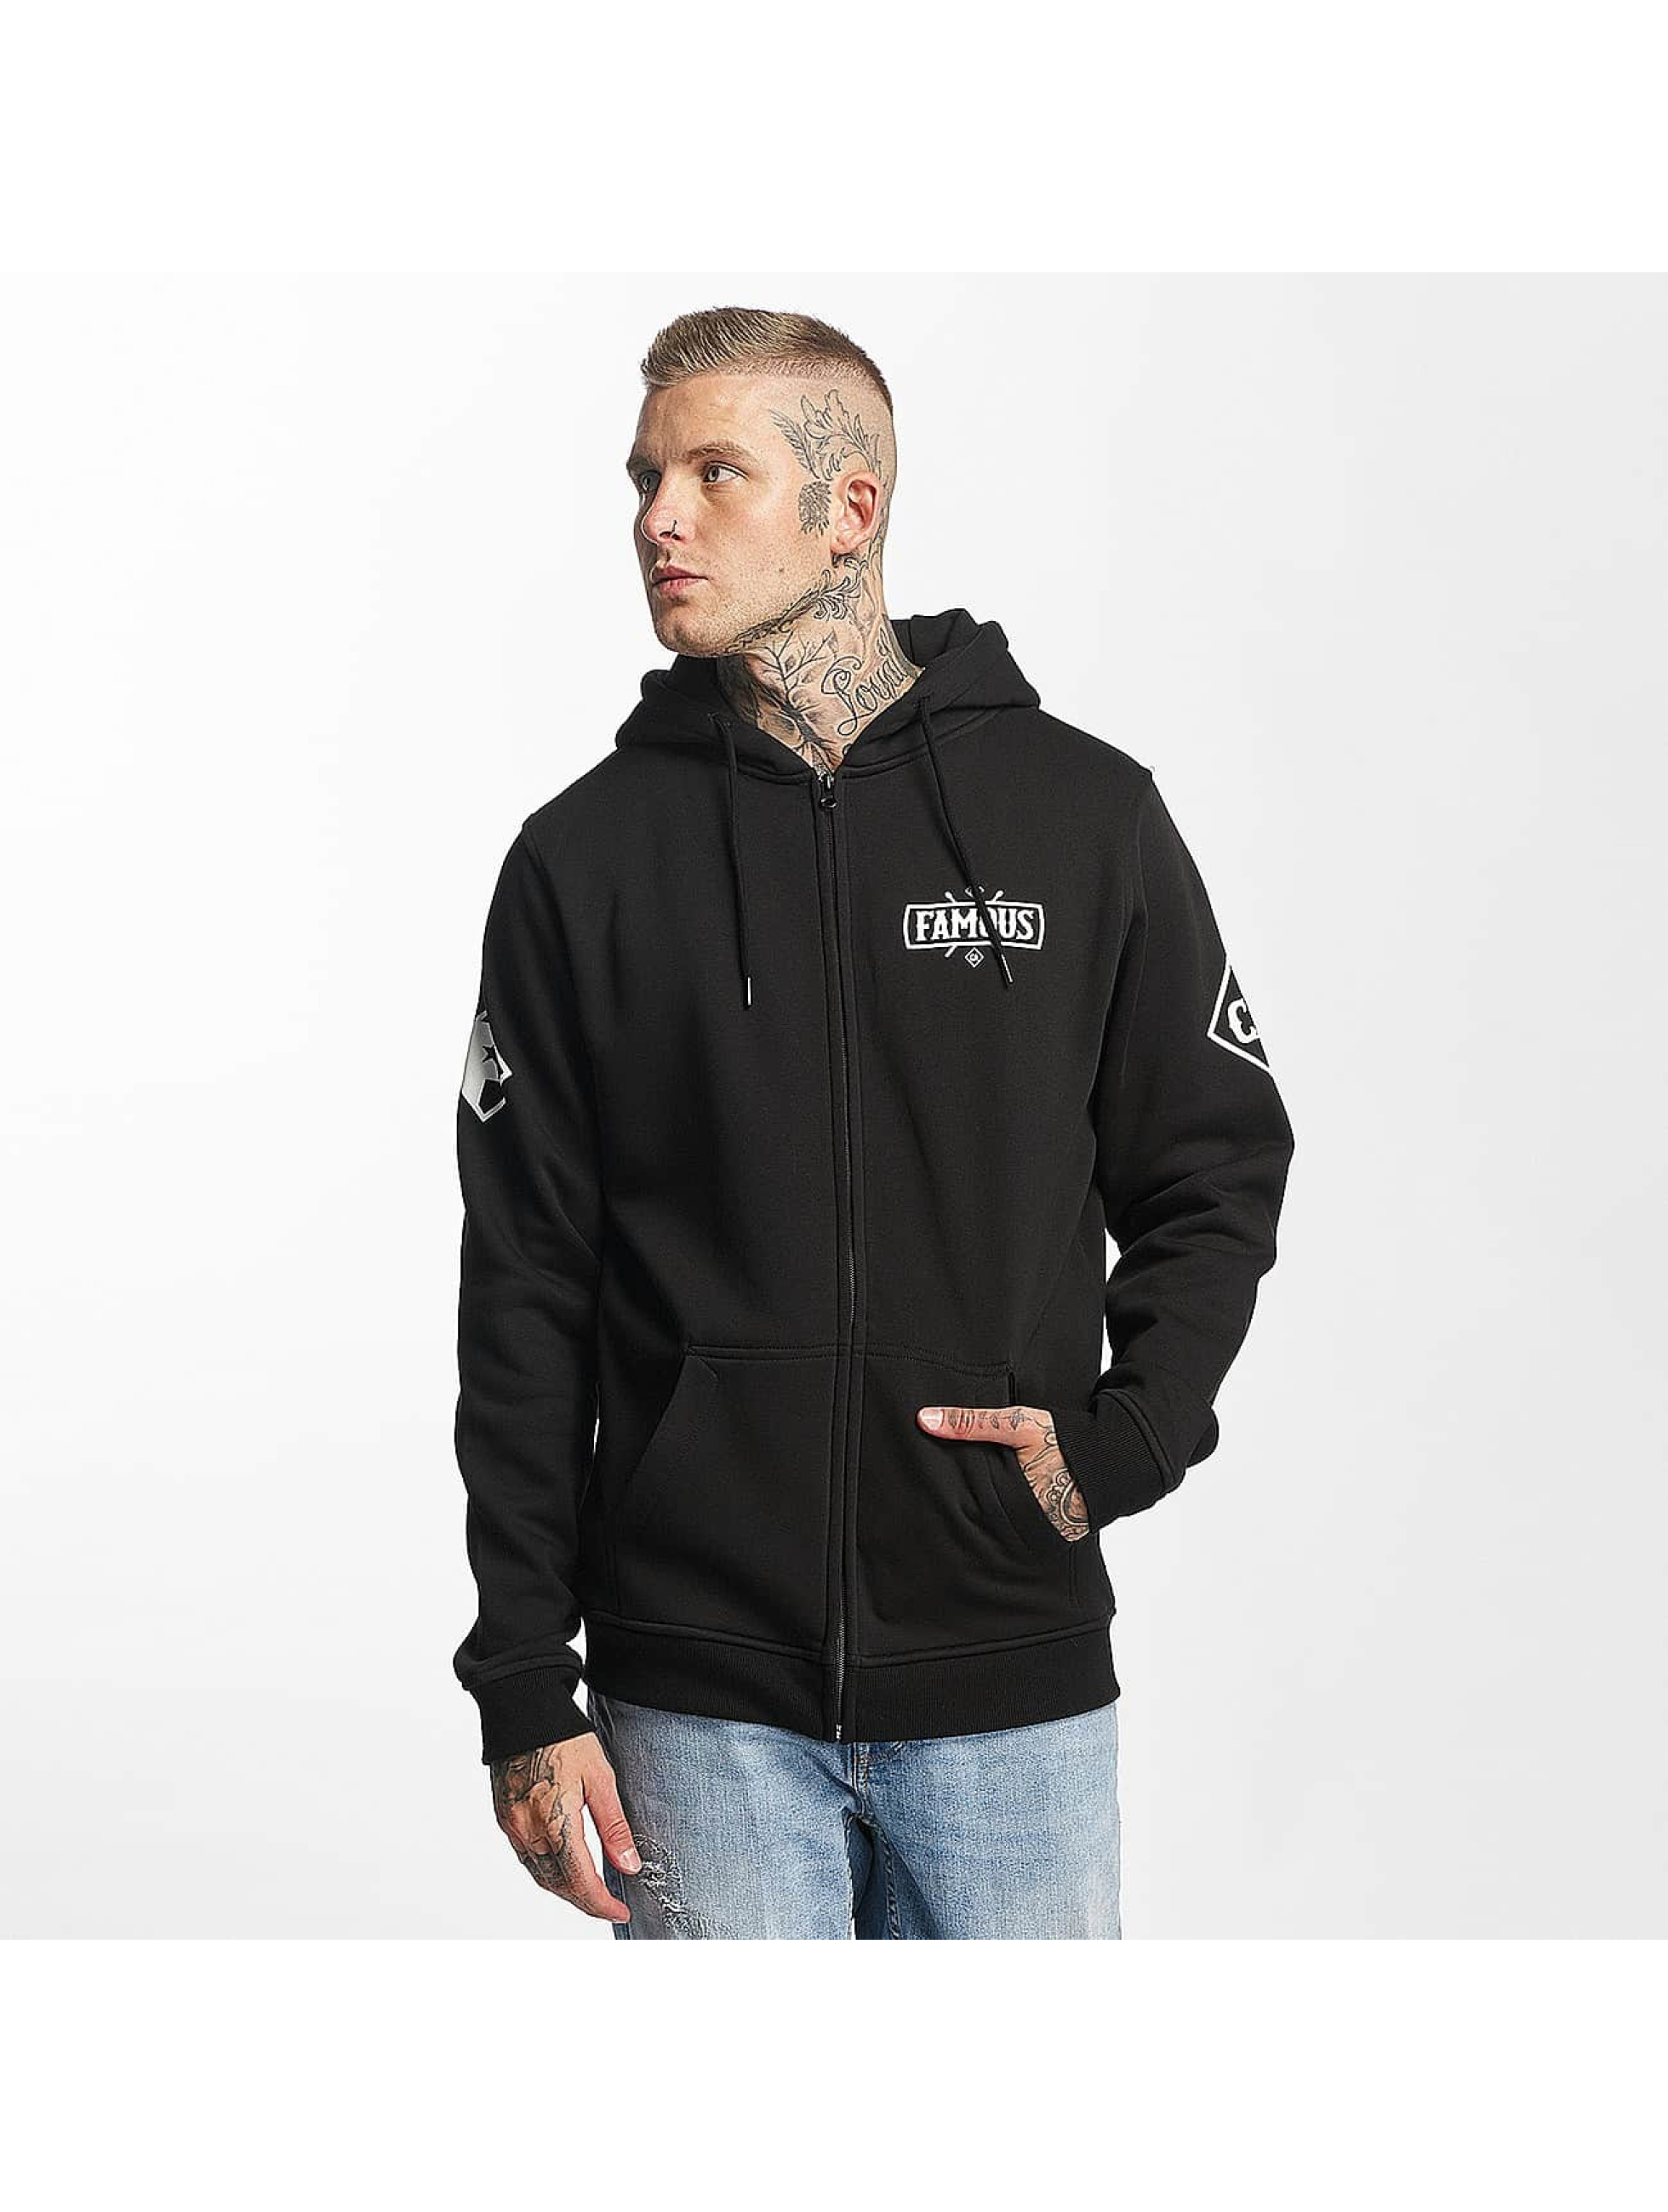 Famous Stars and Straps Männer Zip Hoodie Chaos in schwarz